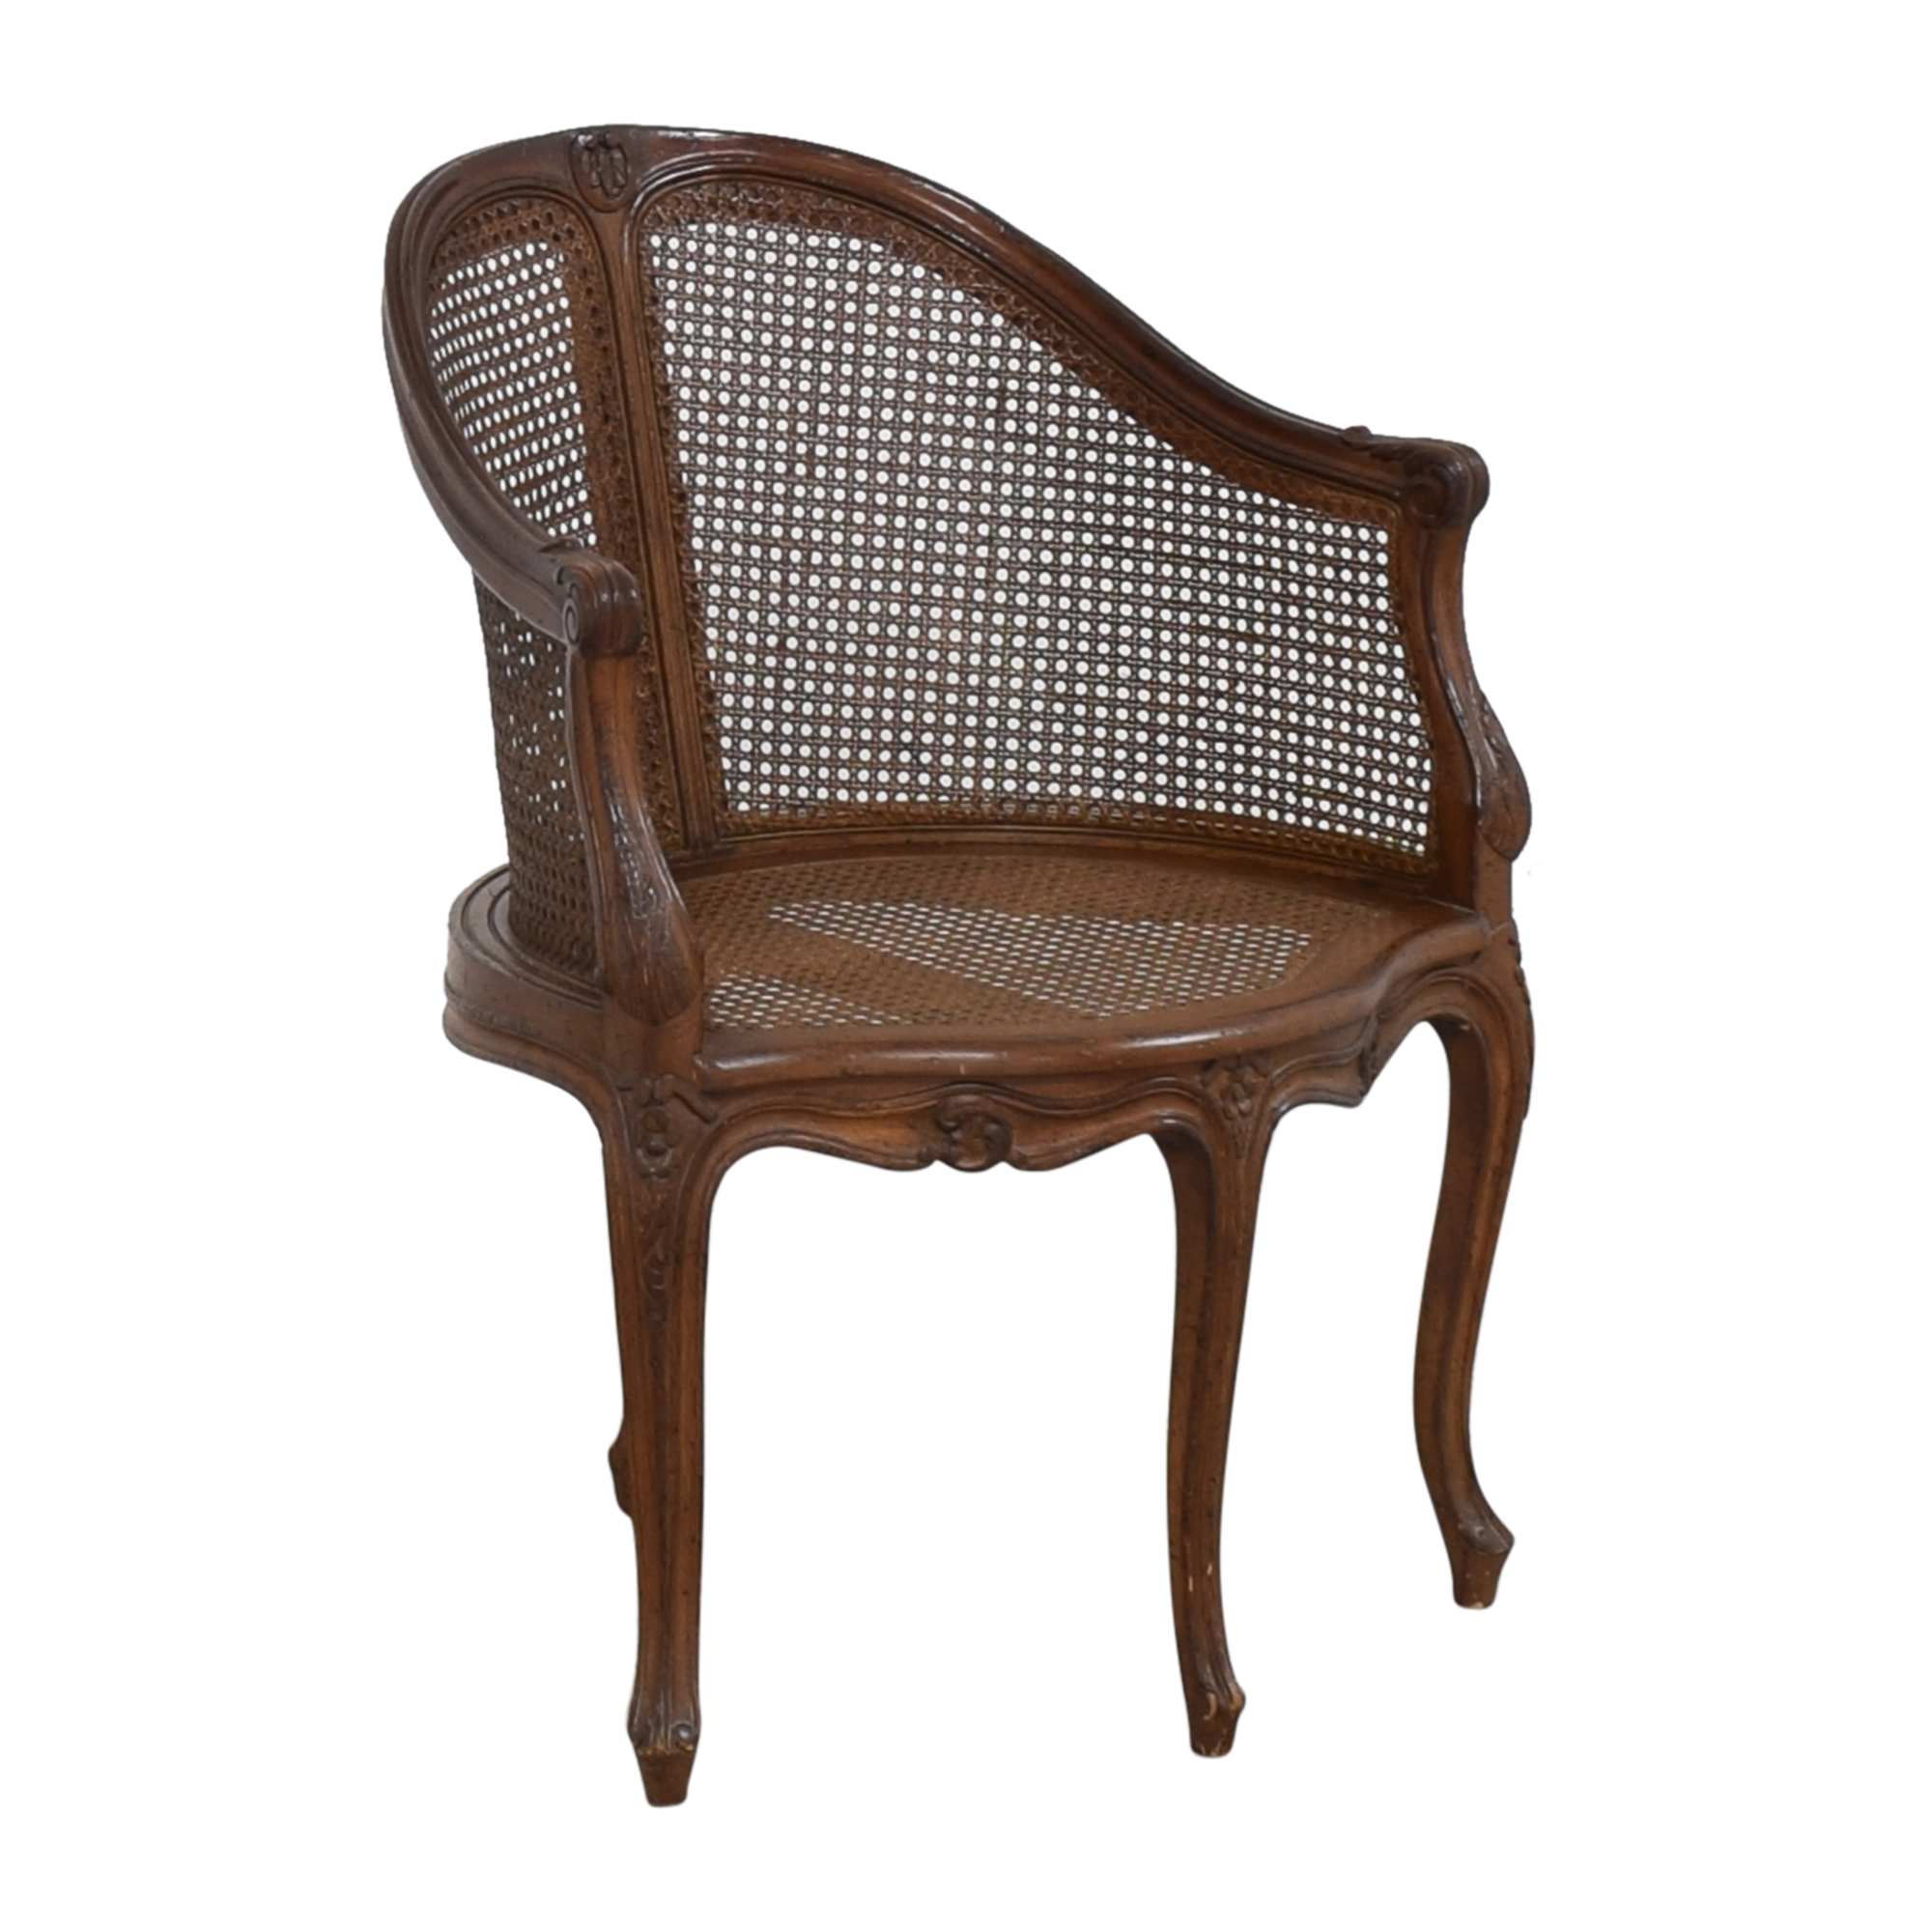 Vintage French-Style Corner Chair pa